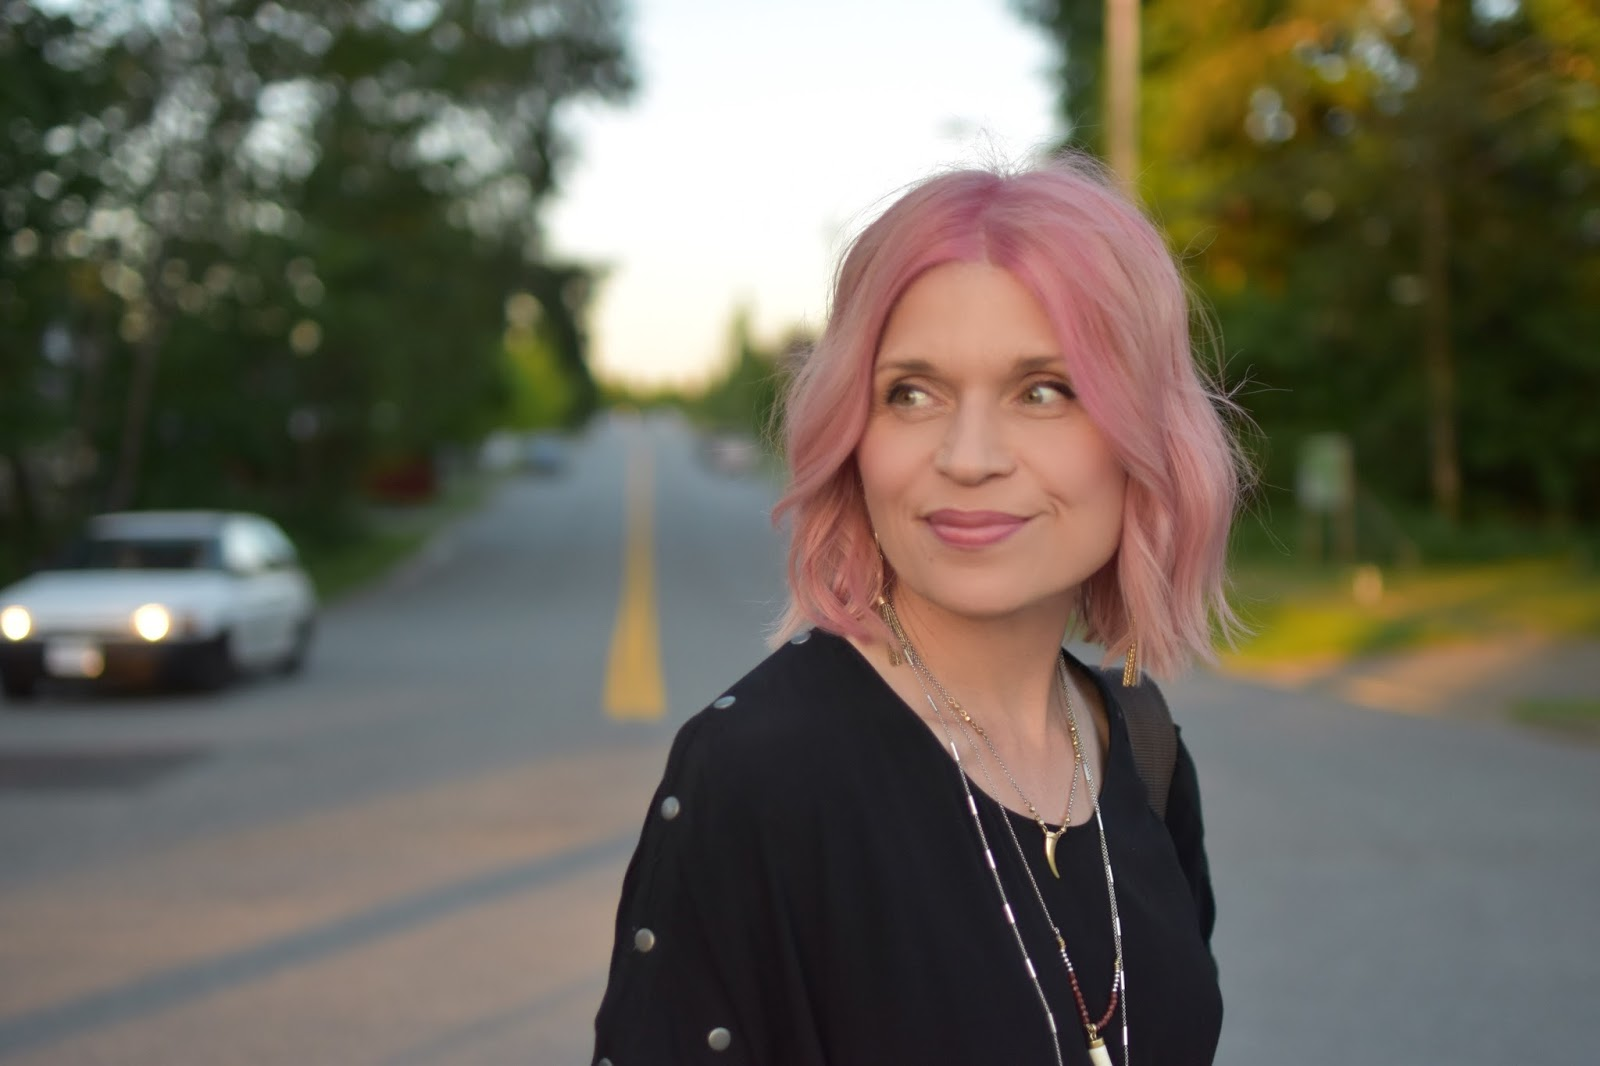 Monika Faulkner outfit inspiration - Aritzia tunic dress, pink hair